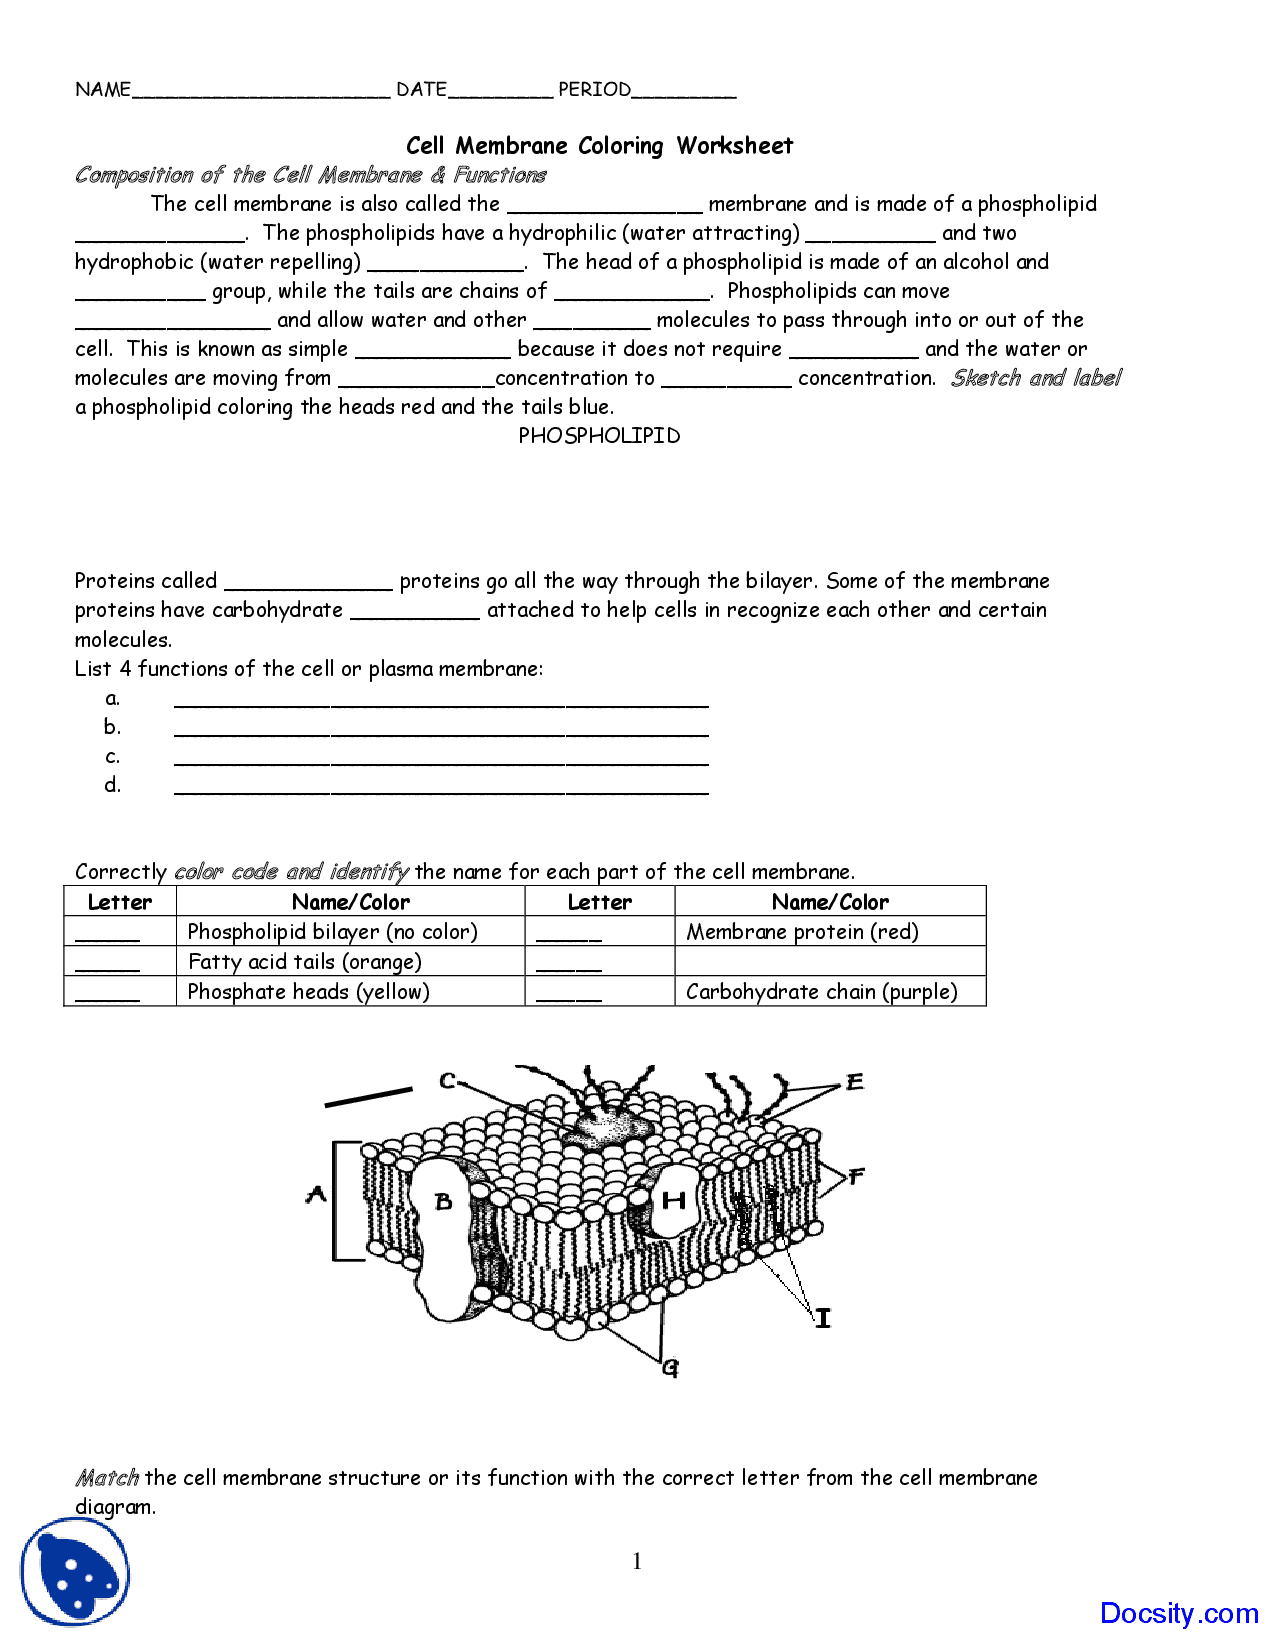 Cell Membrane Coloring Worksheet Adults Answers Biology Junction